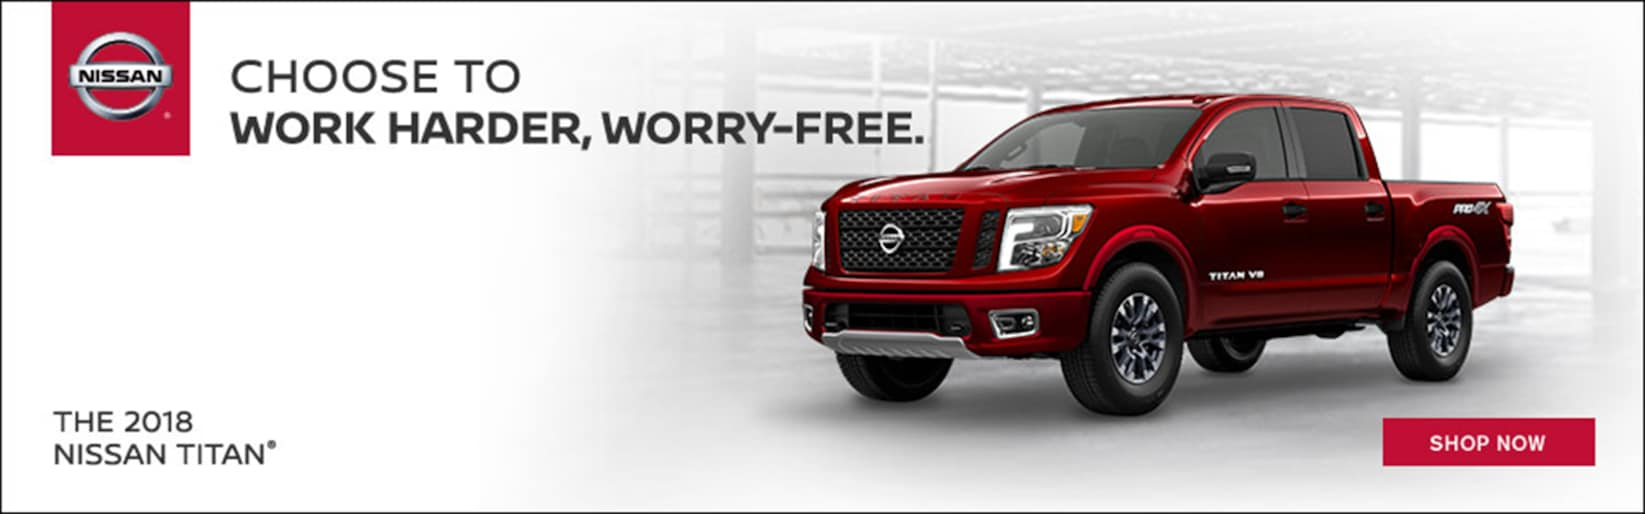 Collins Nissan New Nissan Dealership In Louisville KY - Bill collins ford car show